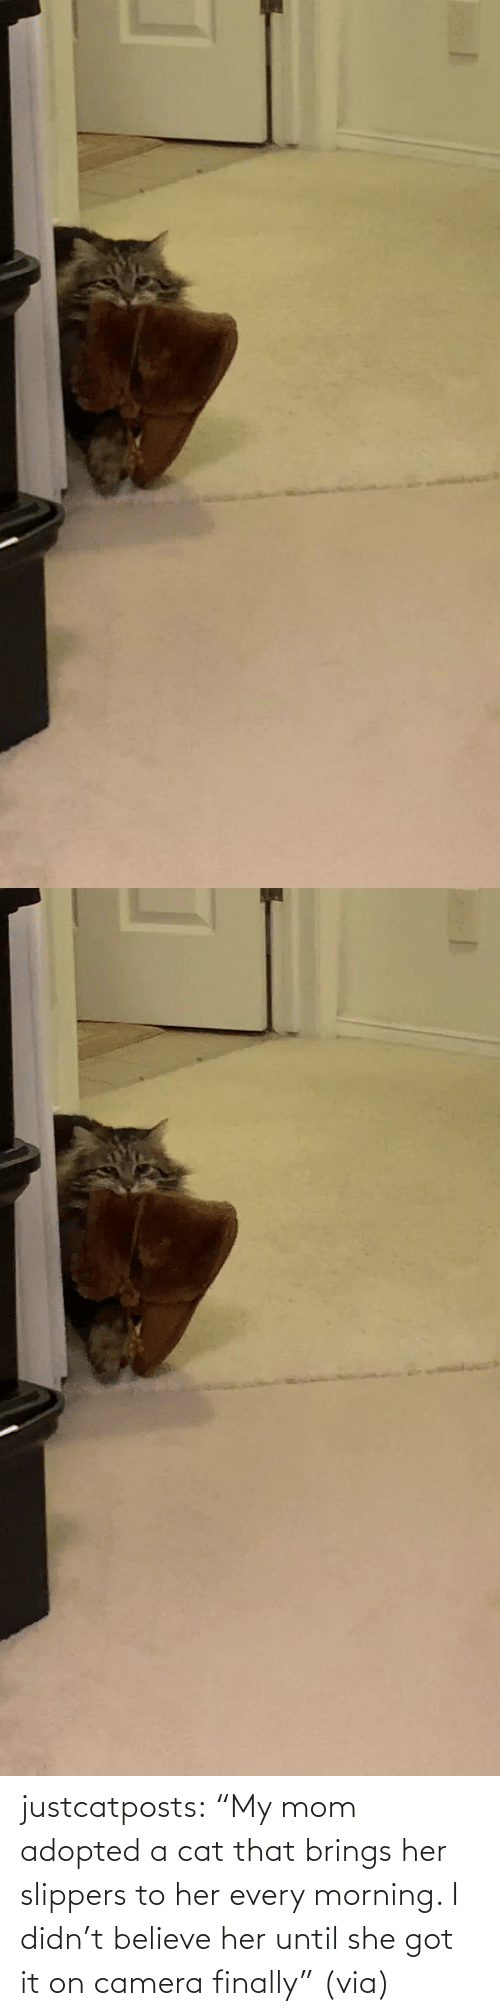 "cat: justcatposts:  ""My mom adopted a cat that brings her slippers to her every morning. I didn't believe her until she got it on camera finally"" (via)"